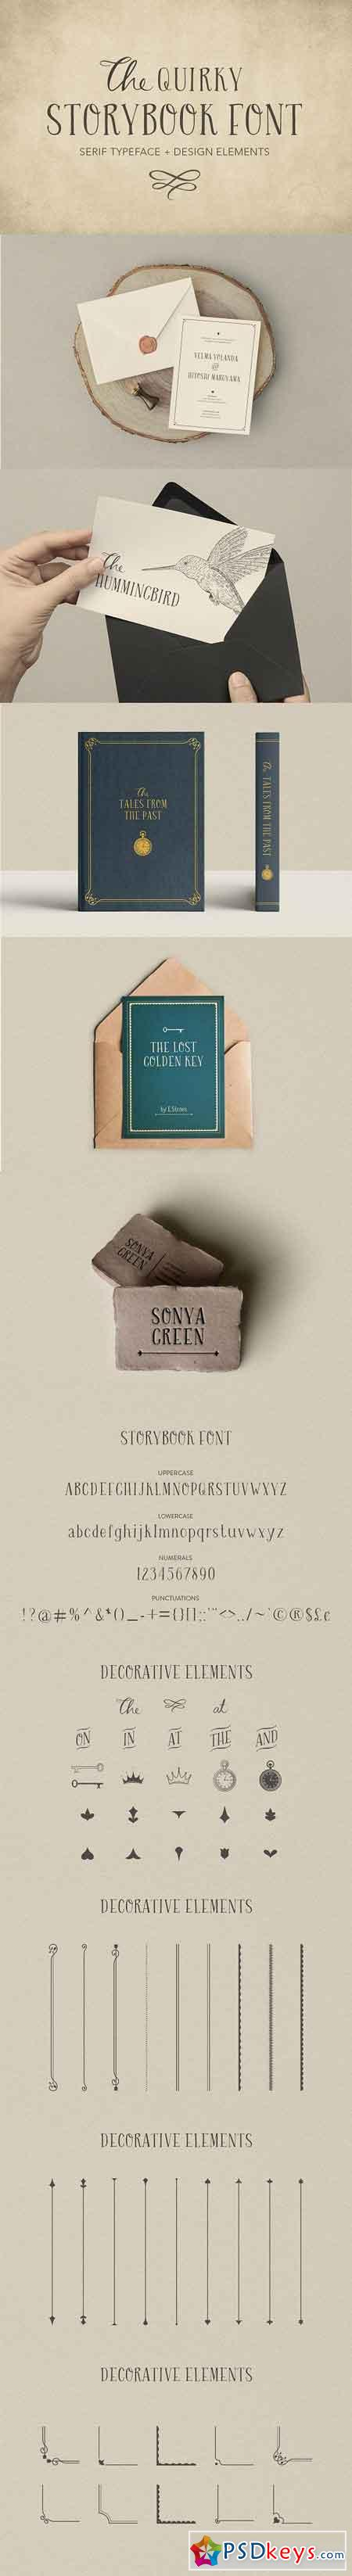 Quirky Storybook Font 2477002